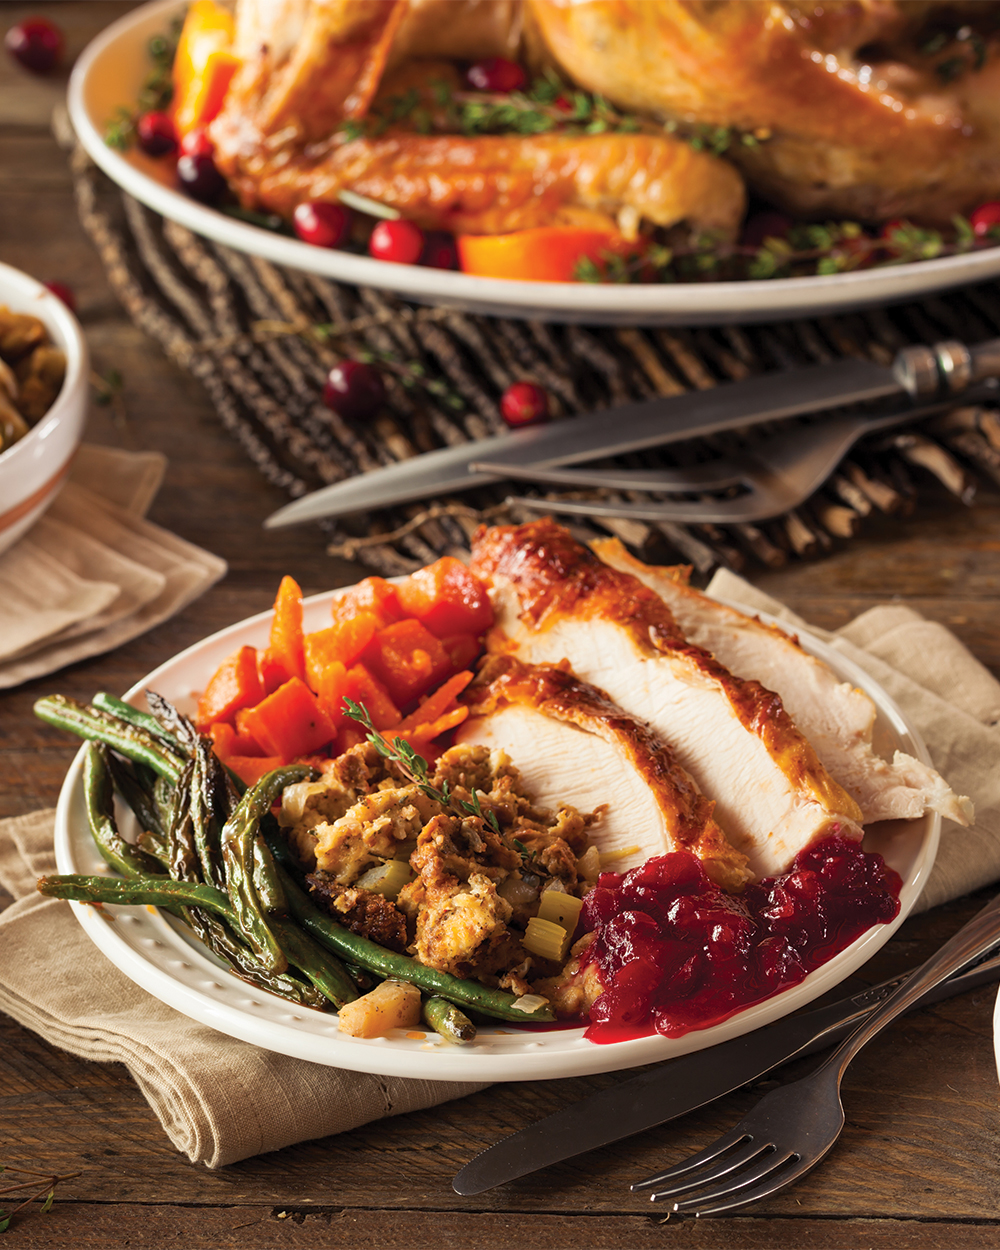 Classic Holiday Recipes with a Twist